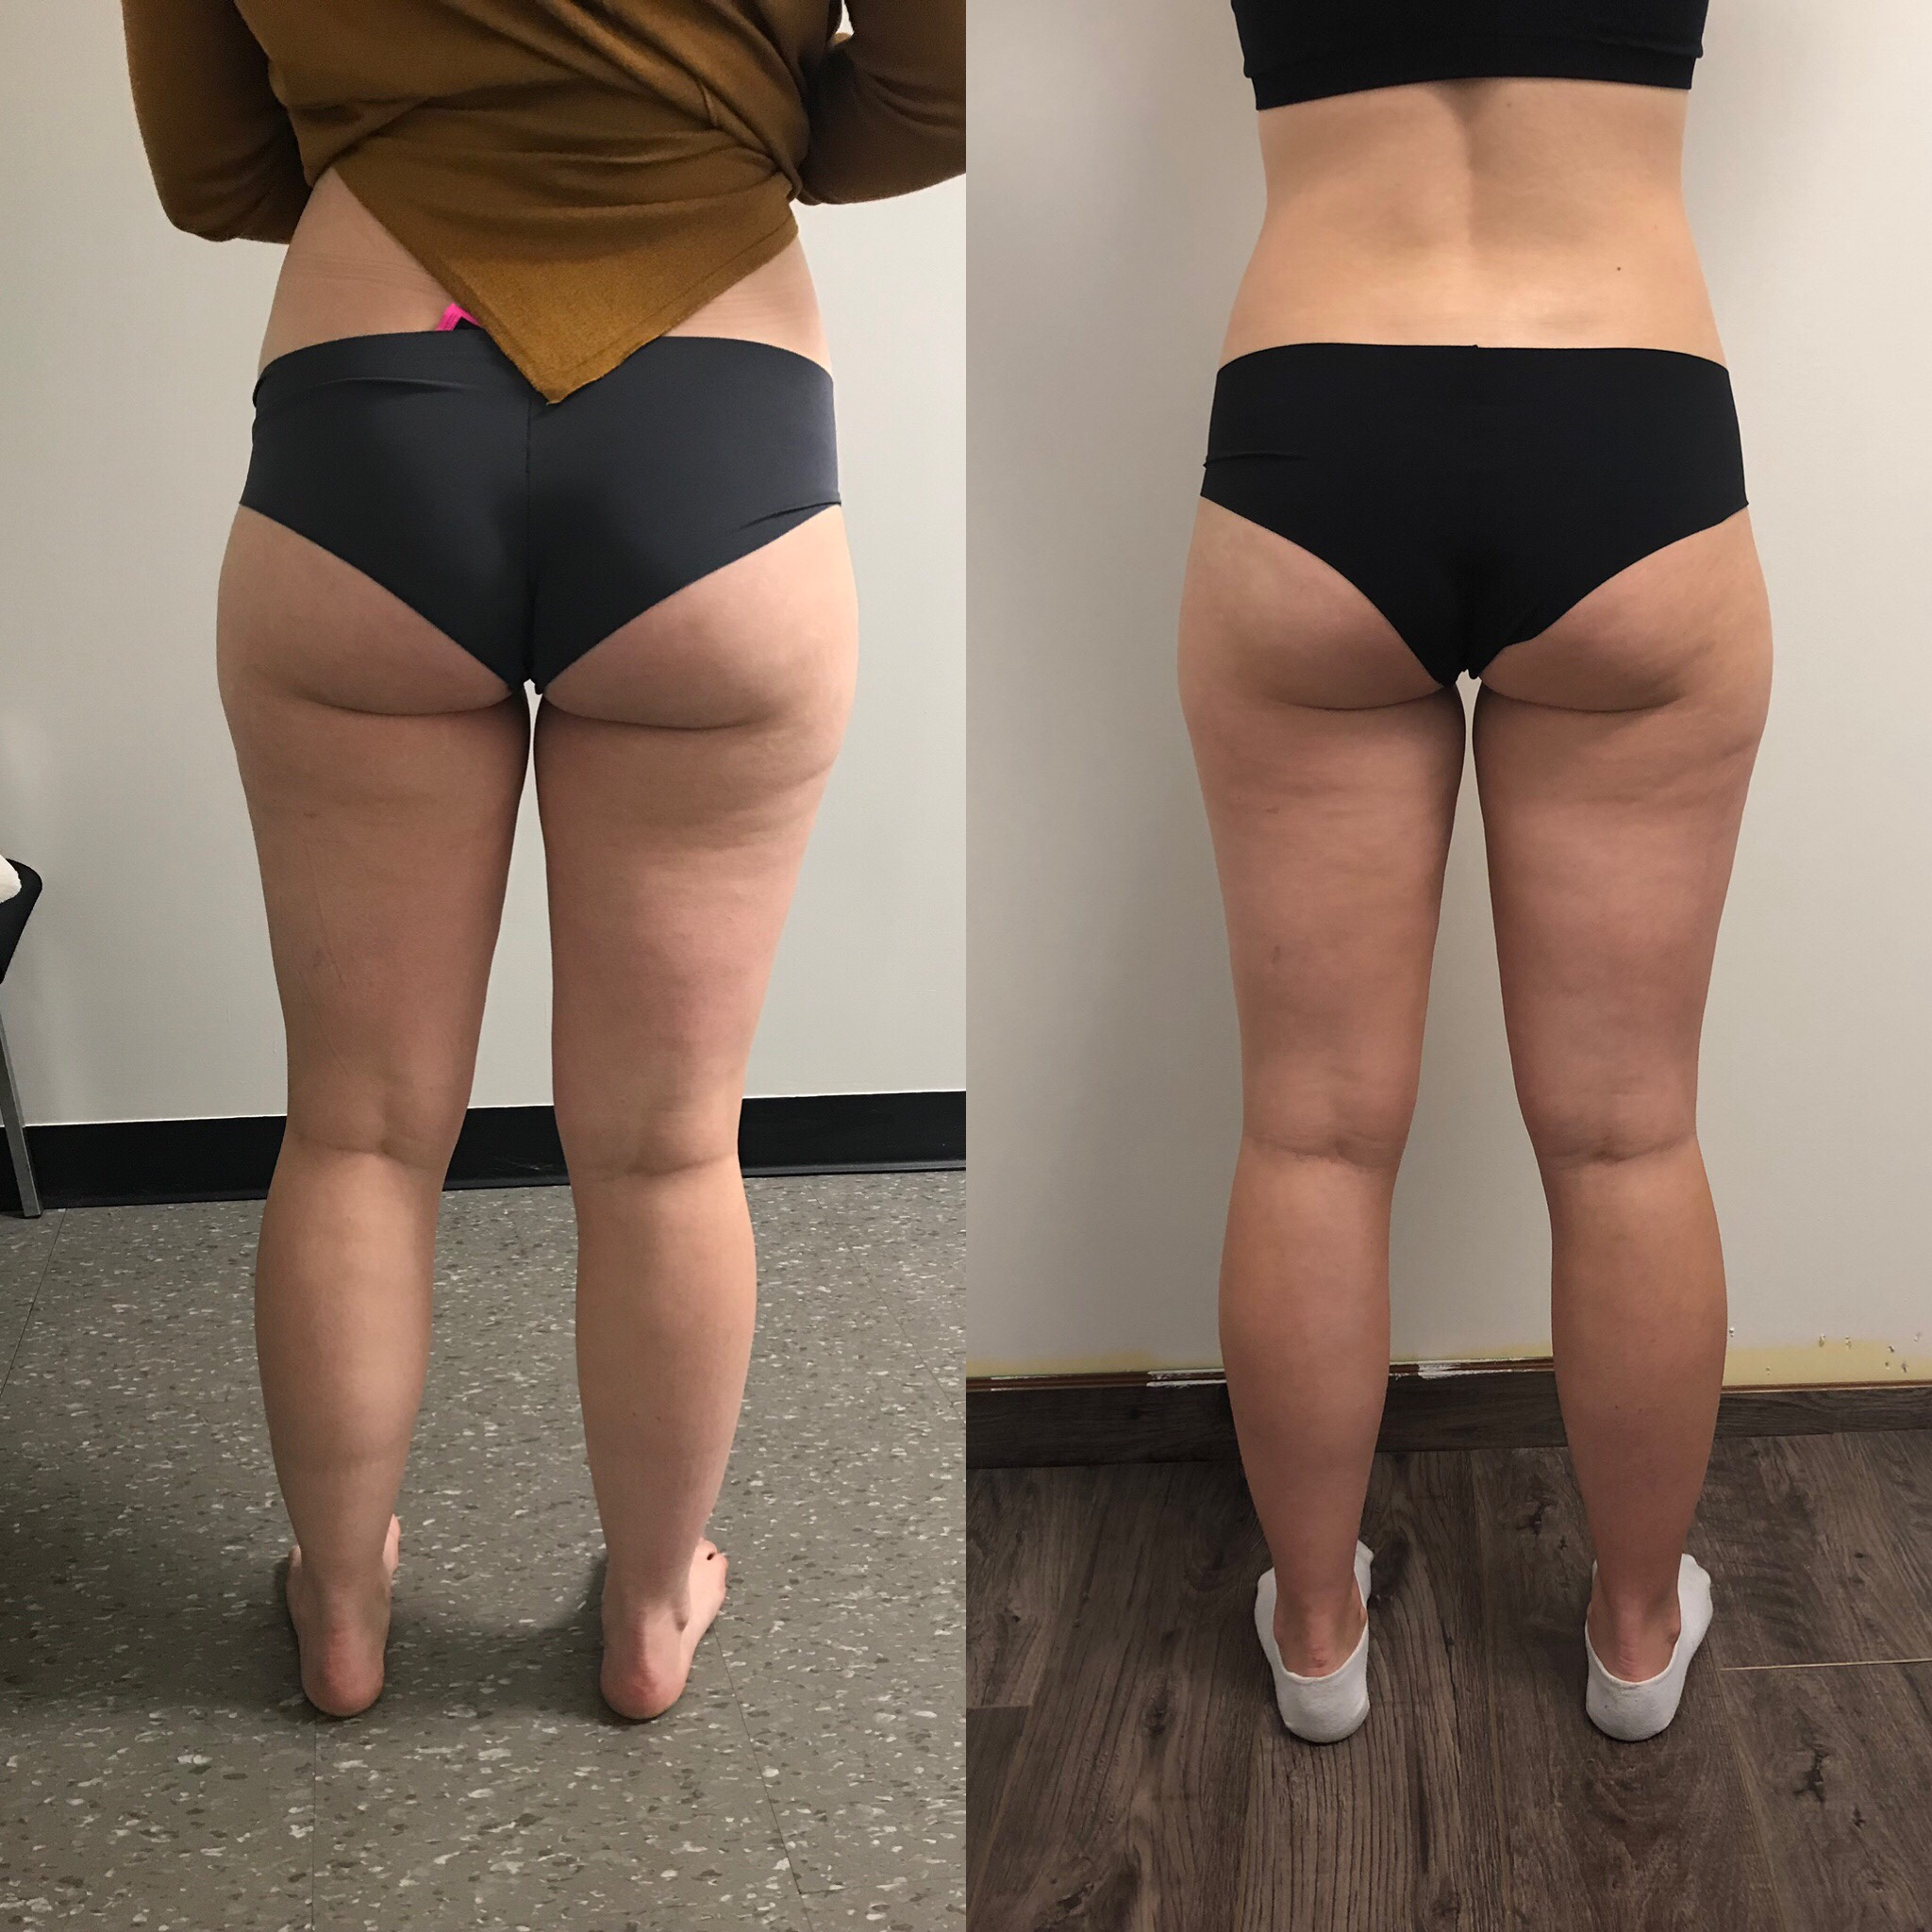 After 24 treaTmentS